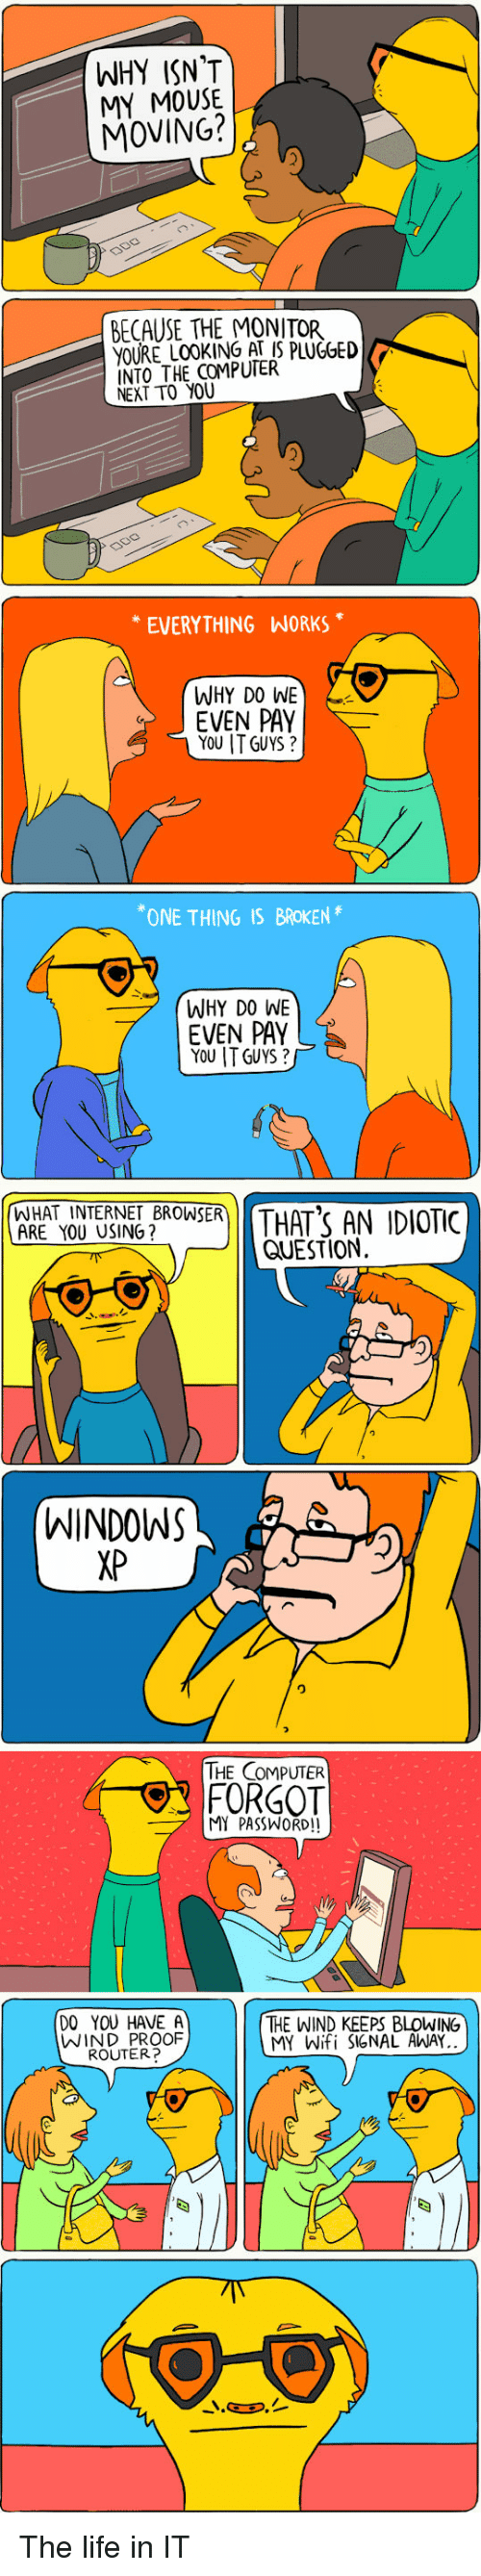 Programmer Humor: WHY ISN'T  MY MOUSE.  MOVING?  BECAUSE THE MONITOR  YOURE LOOKING THE COMPUTER  NEXT TO YOU  EVERYTHING WORK  WHY DO W  LN  EVEN PAY  YOU ITG  ONE THING  IS BROKEN  WHY DO WI  7 EVEN PAY  YOU ITGUYS  WHAT INTERN  BROWSER  THAT'S AN IDIOTIC  ARE YOU USING  QUESTION.  WINDOWS  THE COMPUTER  FORGOT  MI WOR  DO YOU HAVE A  THE WIND KEEPS BLOWING  WIND PROOF  IGNAL AWA  MY W  ROUTE The life in IT